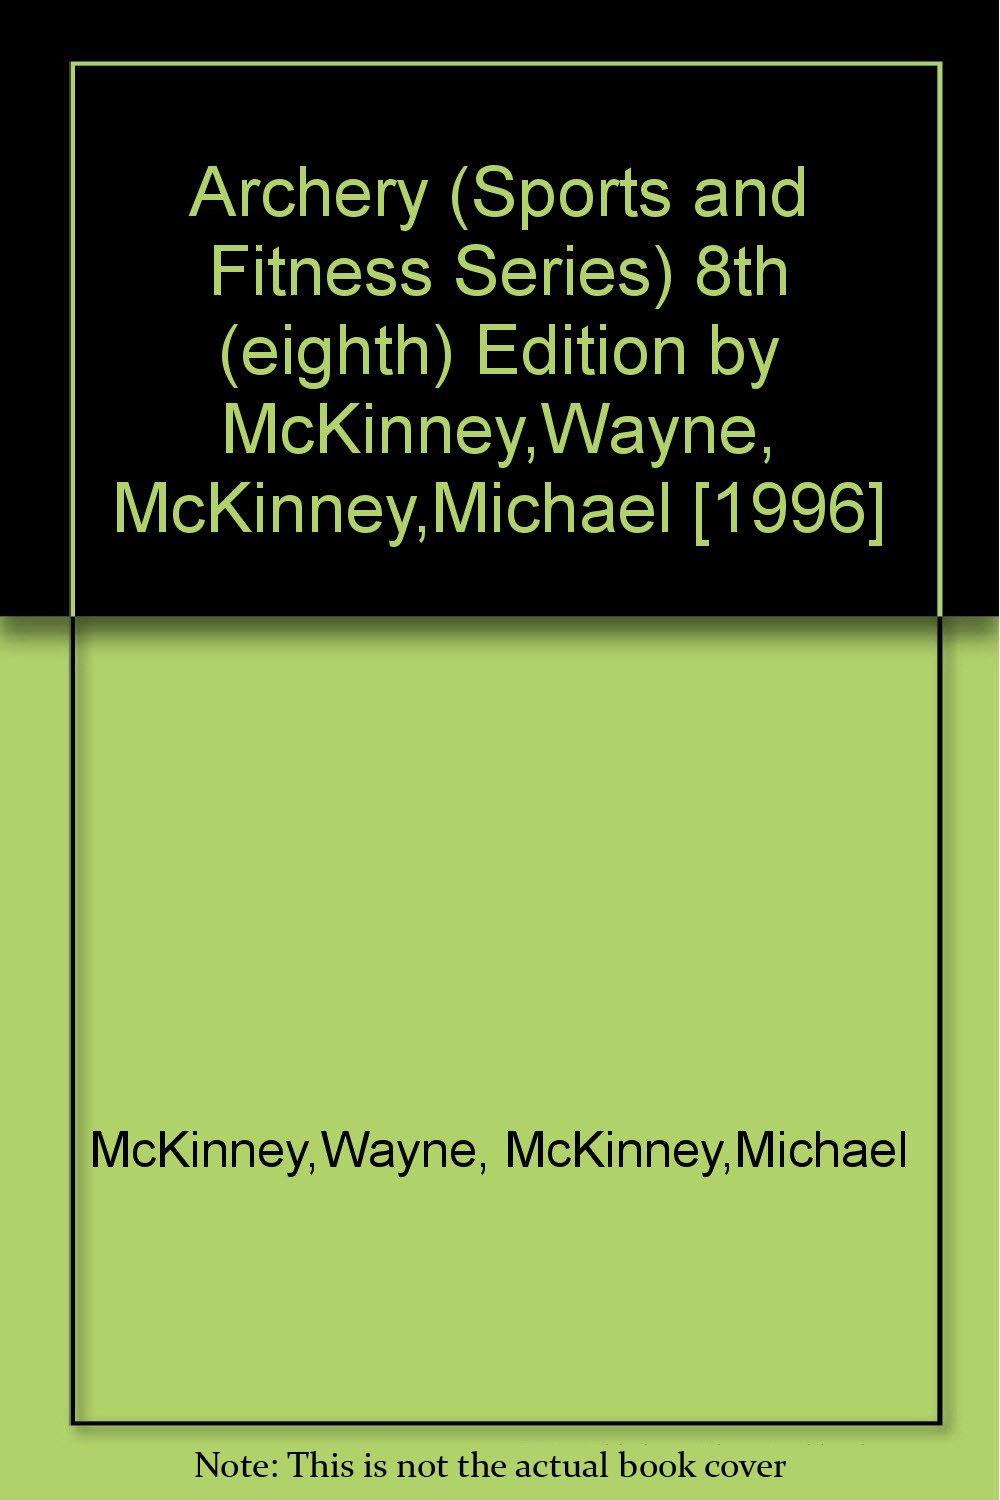 Archery (Sports and Fitness Series)